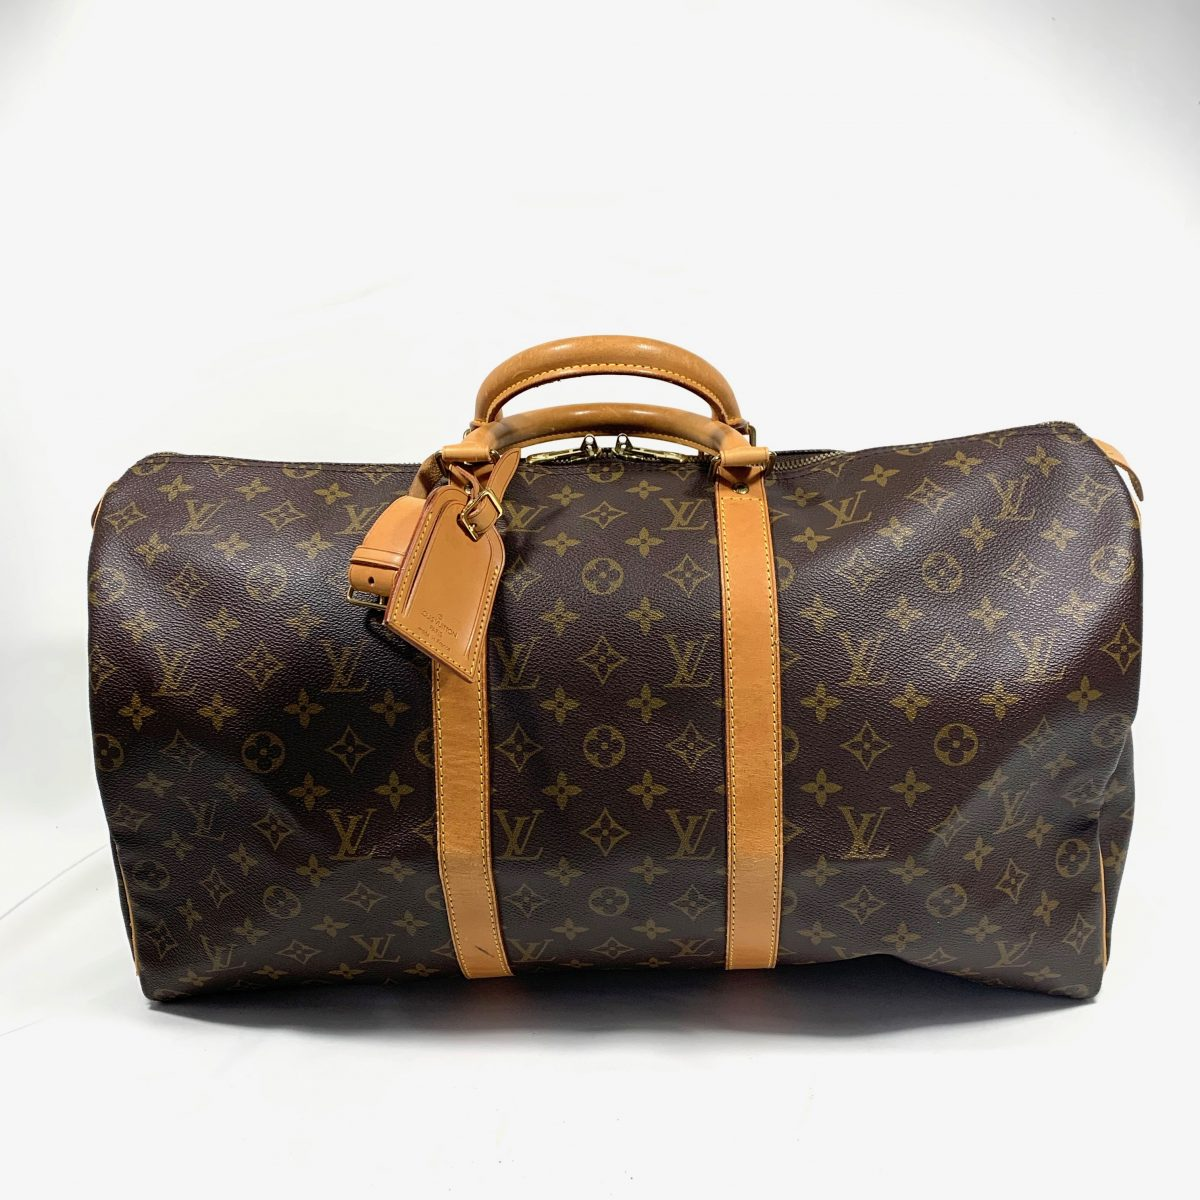 Louis Vuitton Keepall 50 designer travel bag